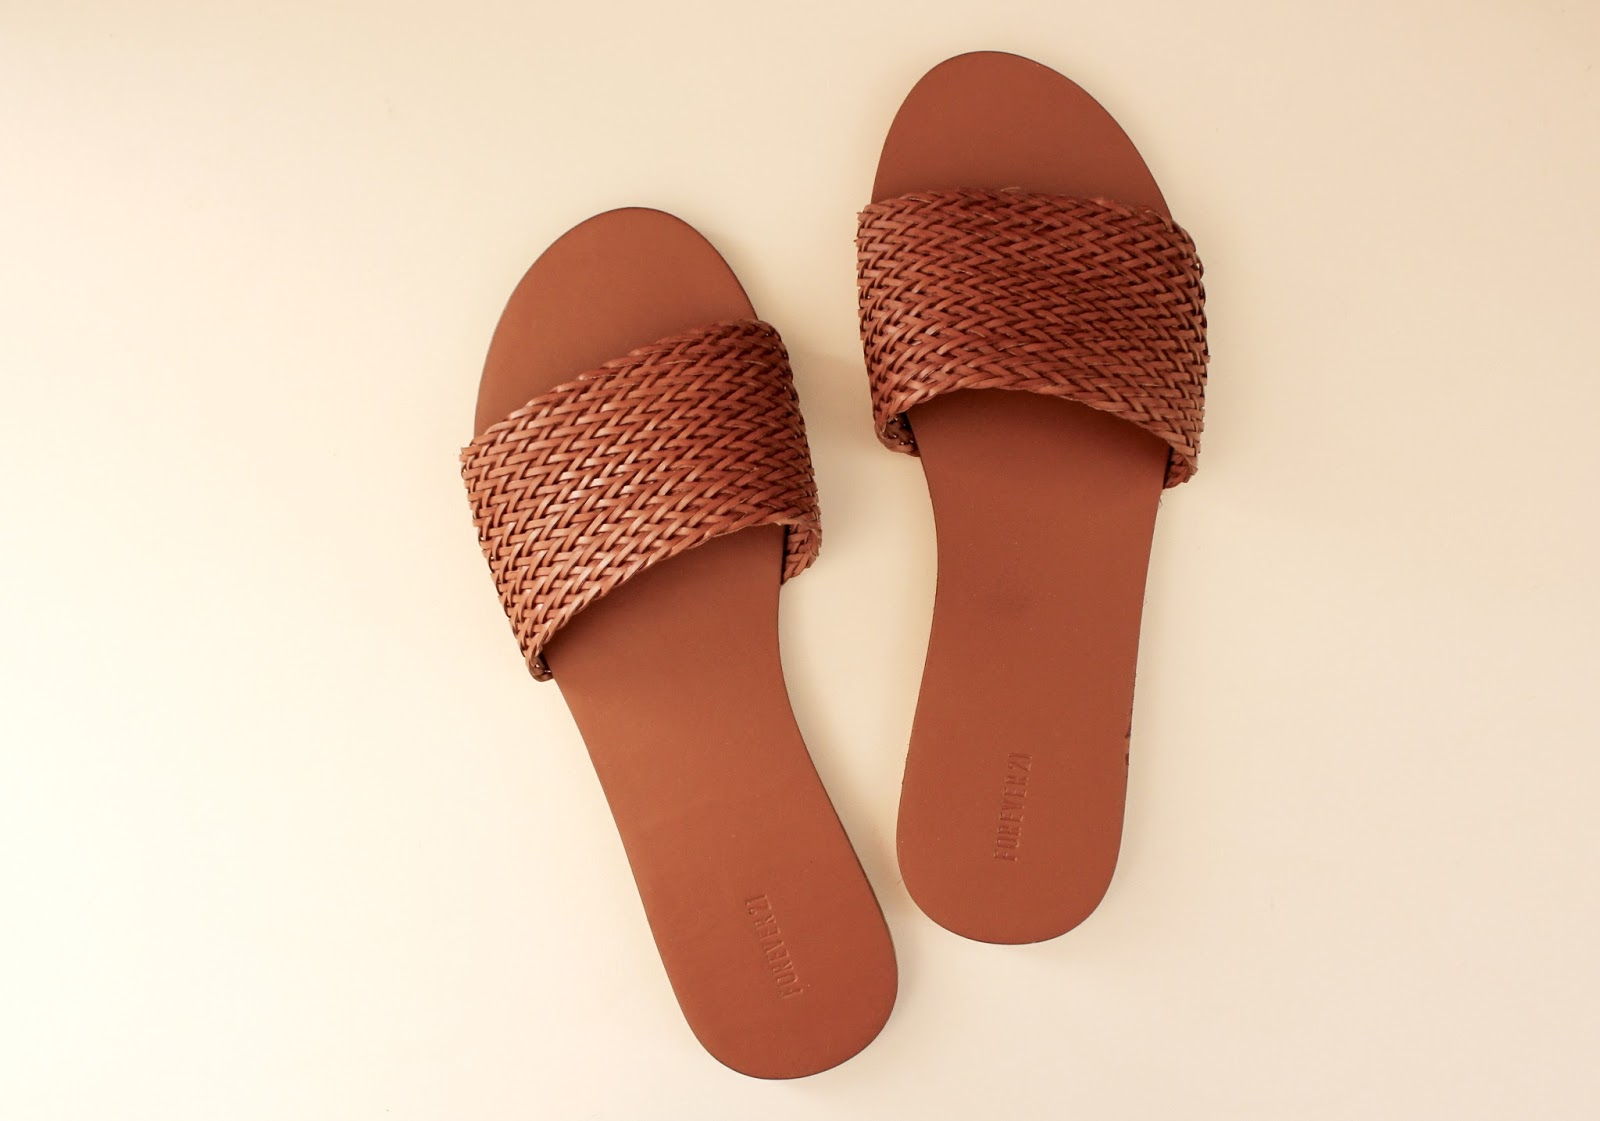 Forever 21 Faux Leather Slip-On Sandals